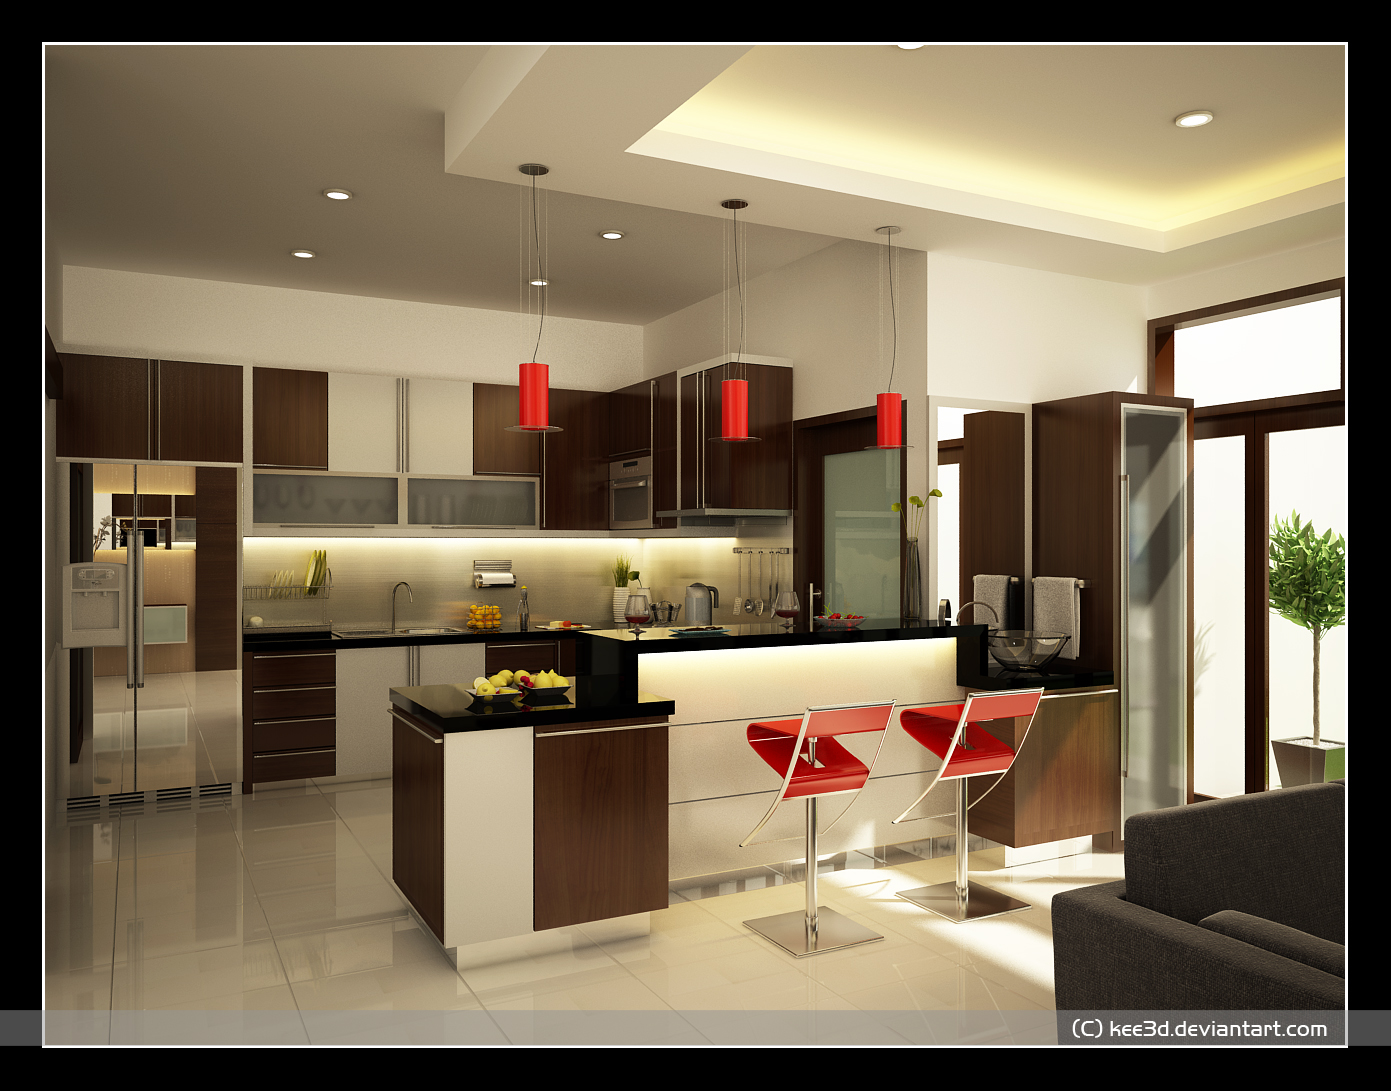 Interior Design Ideas Kitchen Kitchen Design Ideas Set 2